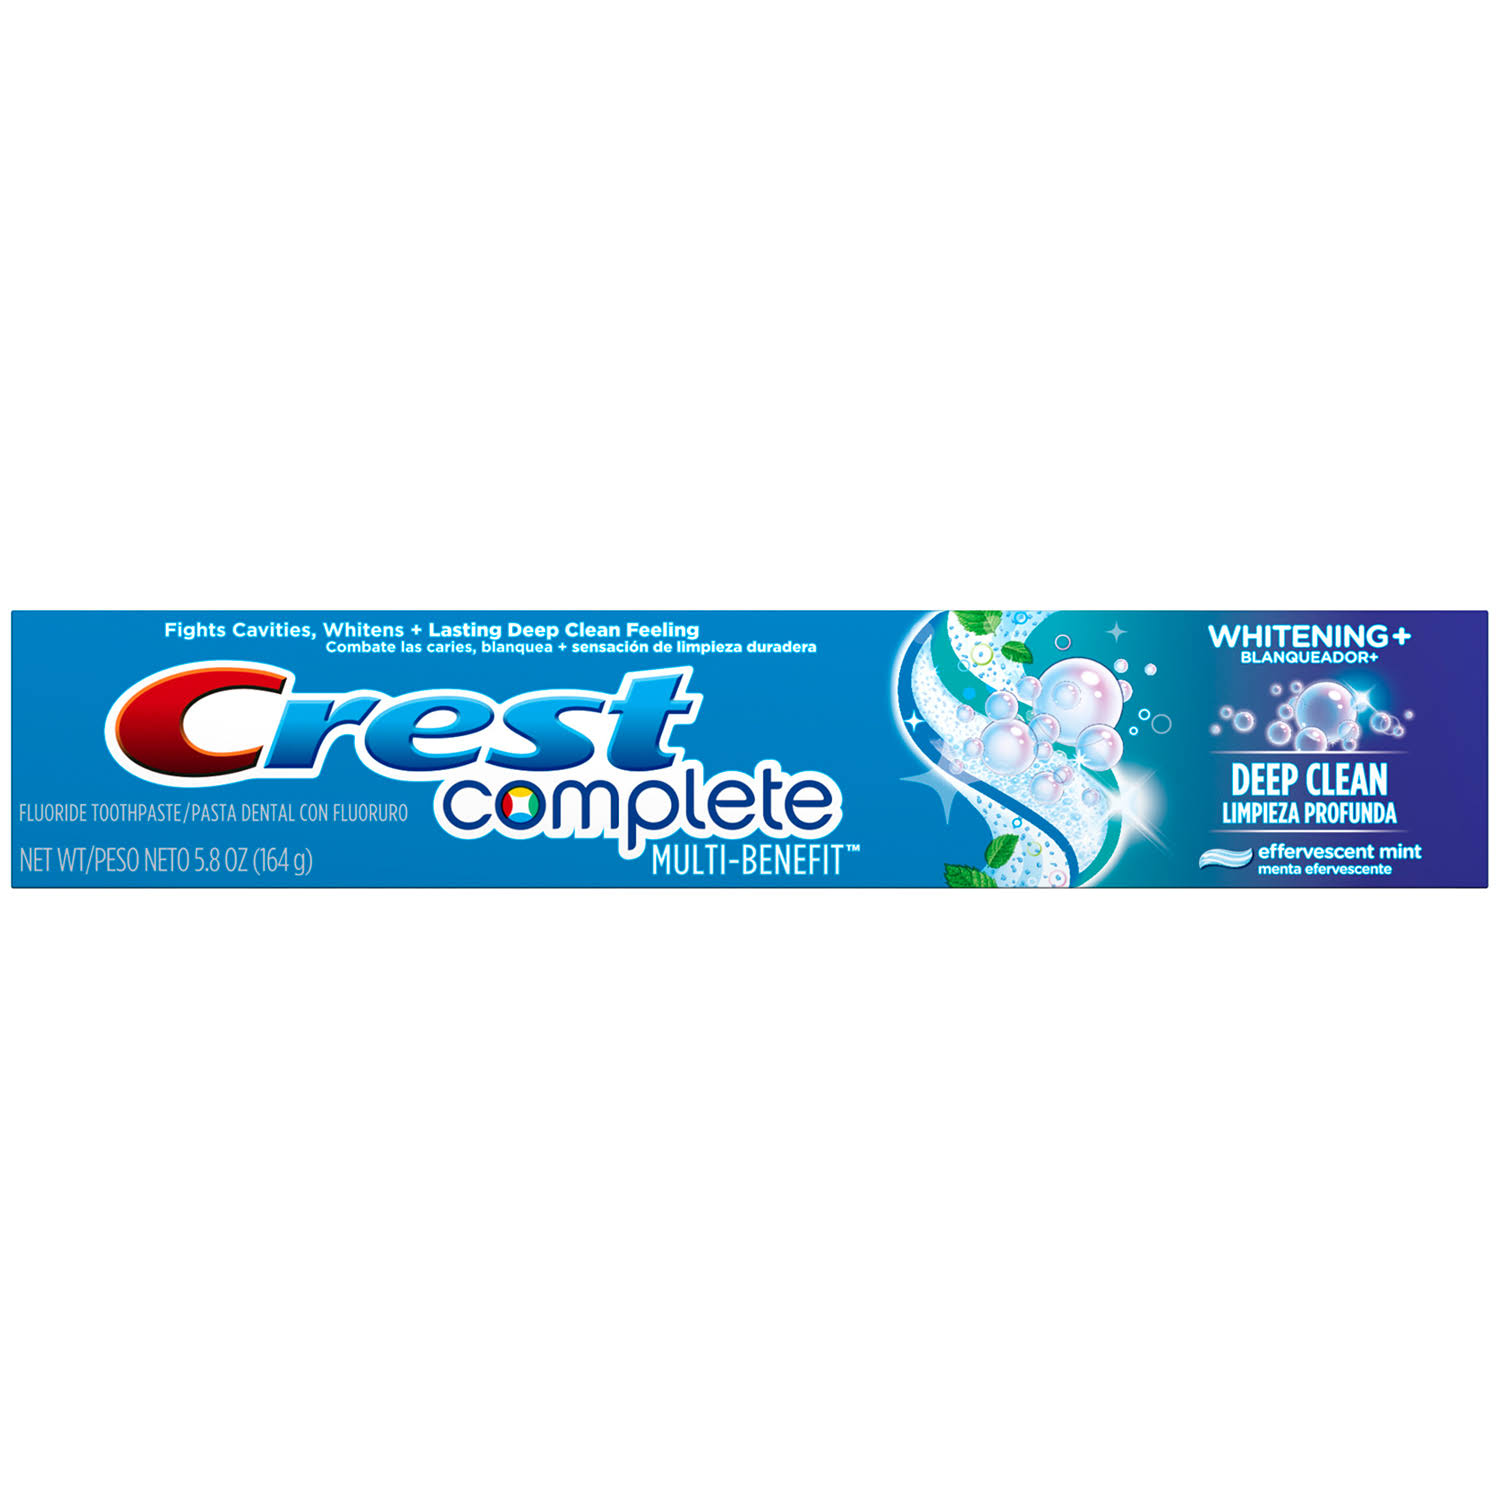 Crest Complete Multi Benefit Whitening and Deep Clean Fluoride Toothpaste - 5.8oz, Effervescent Mint